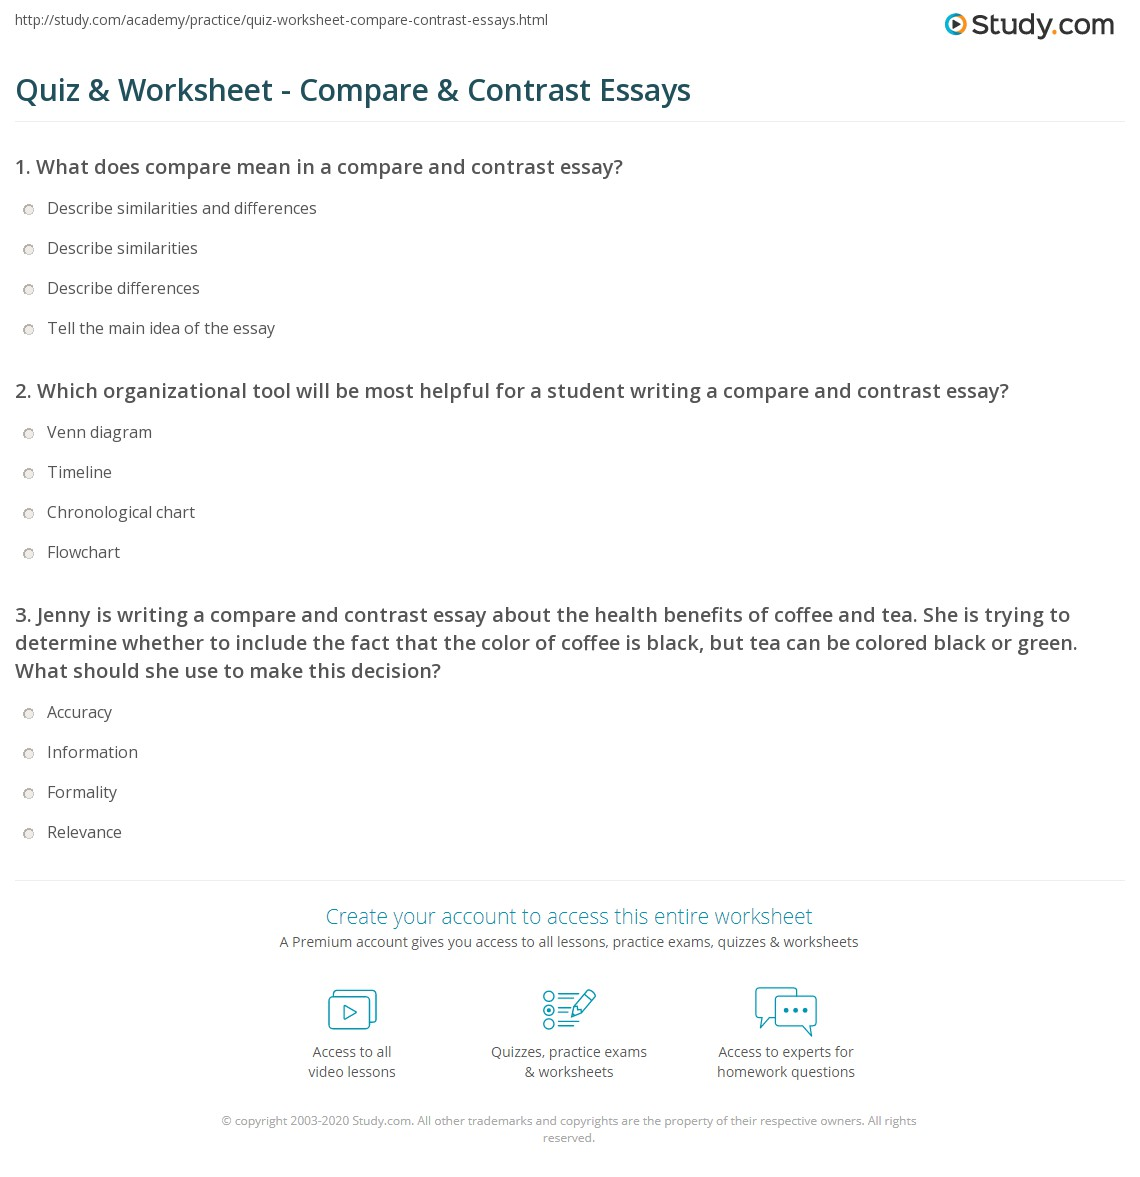 quiz & worksheet - compare & contrast essays | study